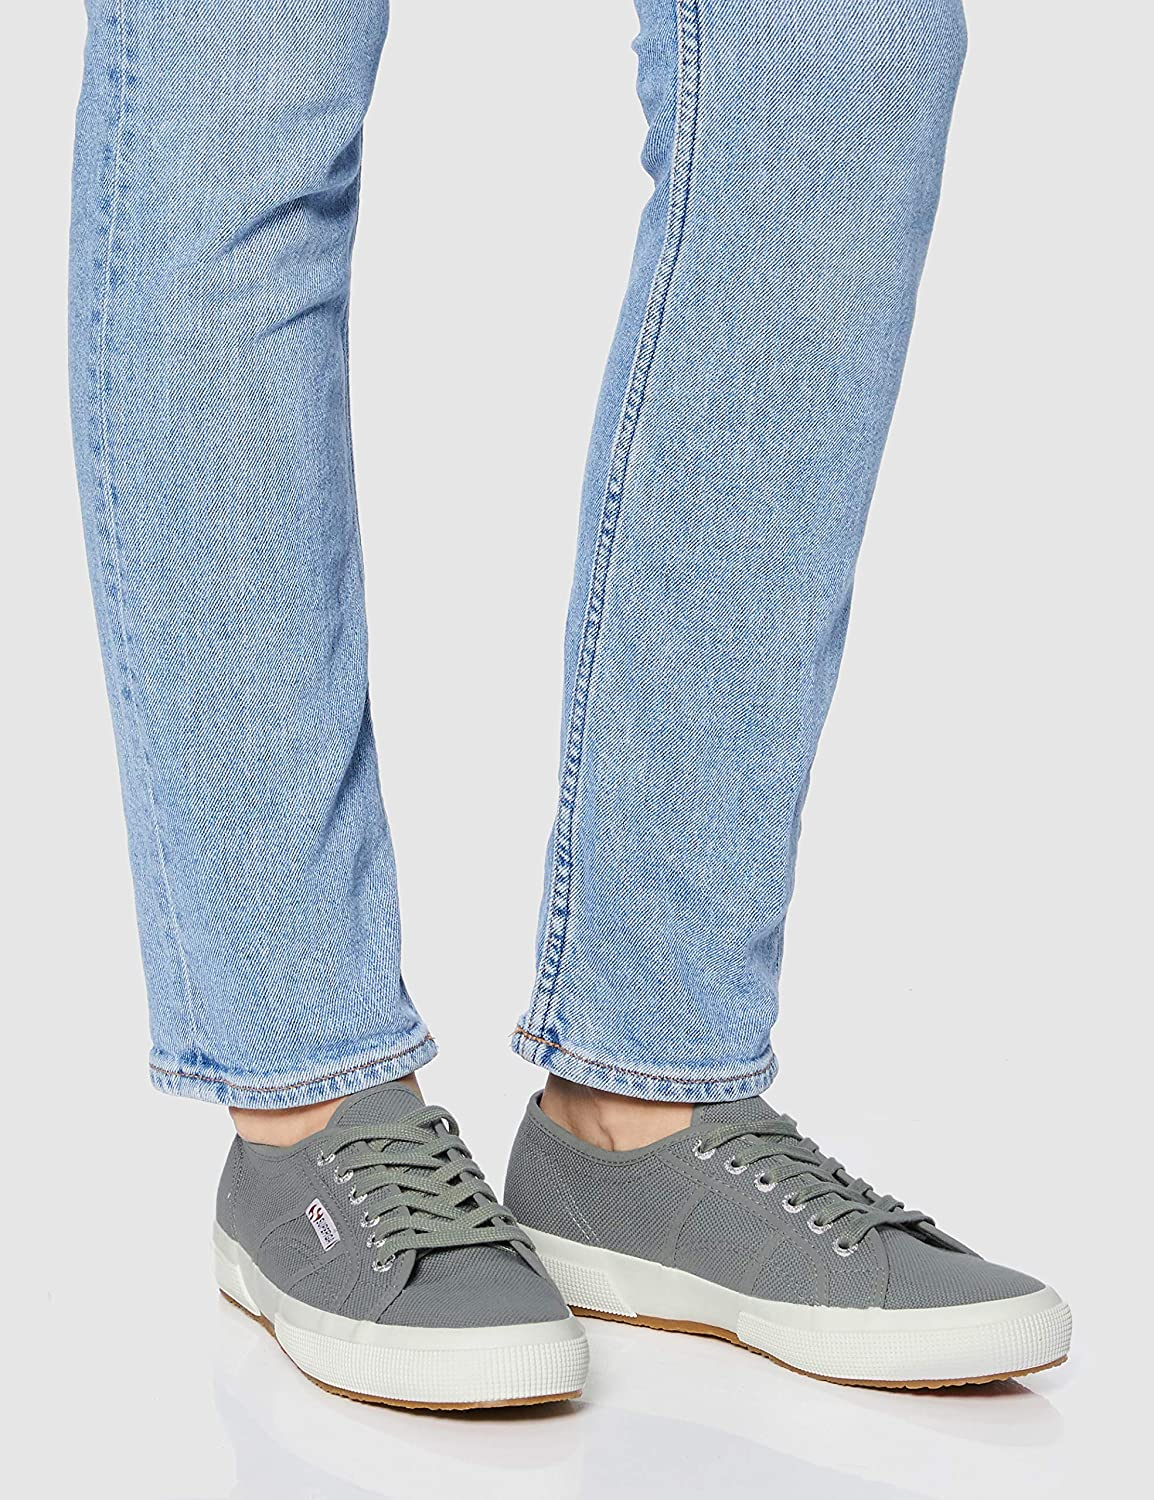 Superga 2750 Cotu Classic', Baskets Mixte Adulte Gris Gray Dk Sage